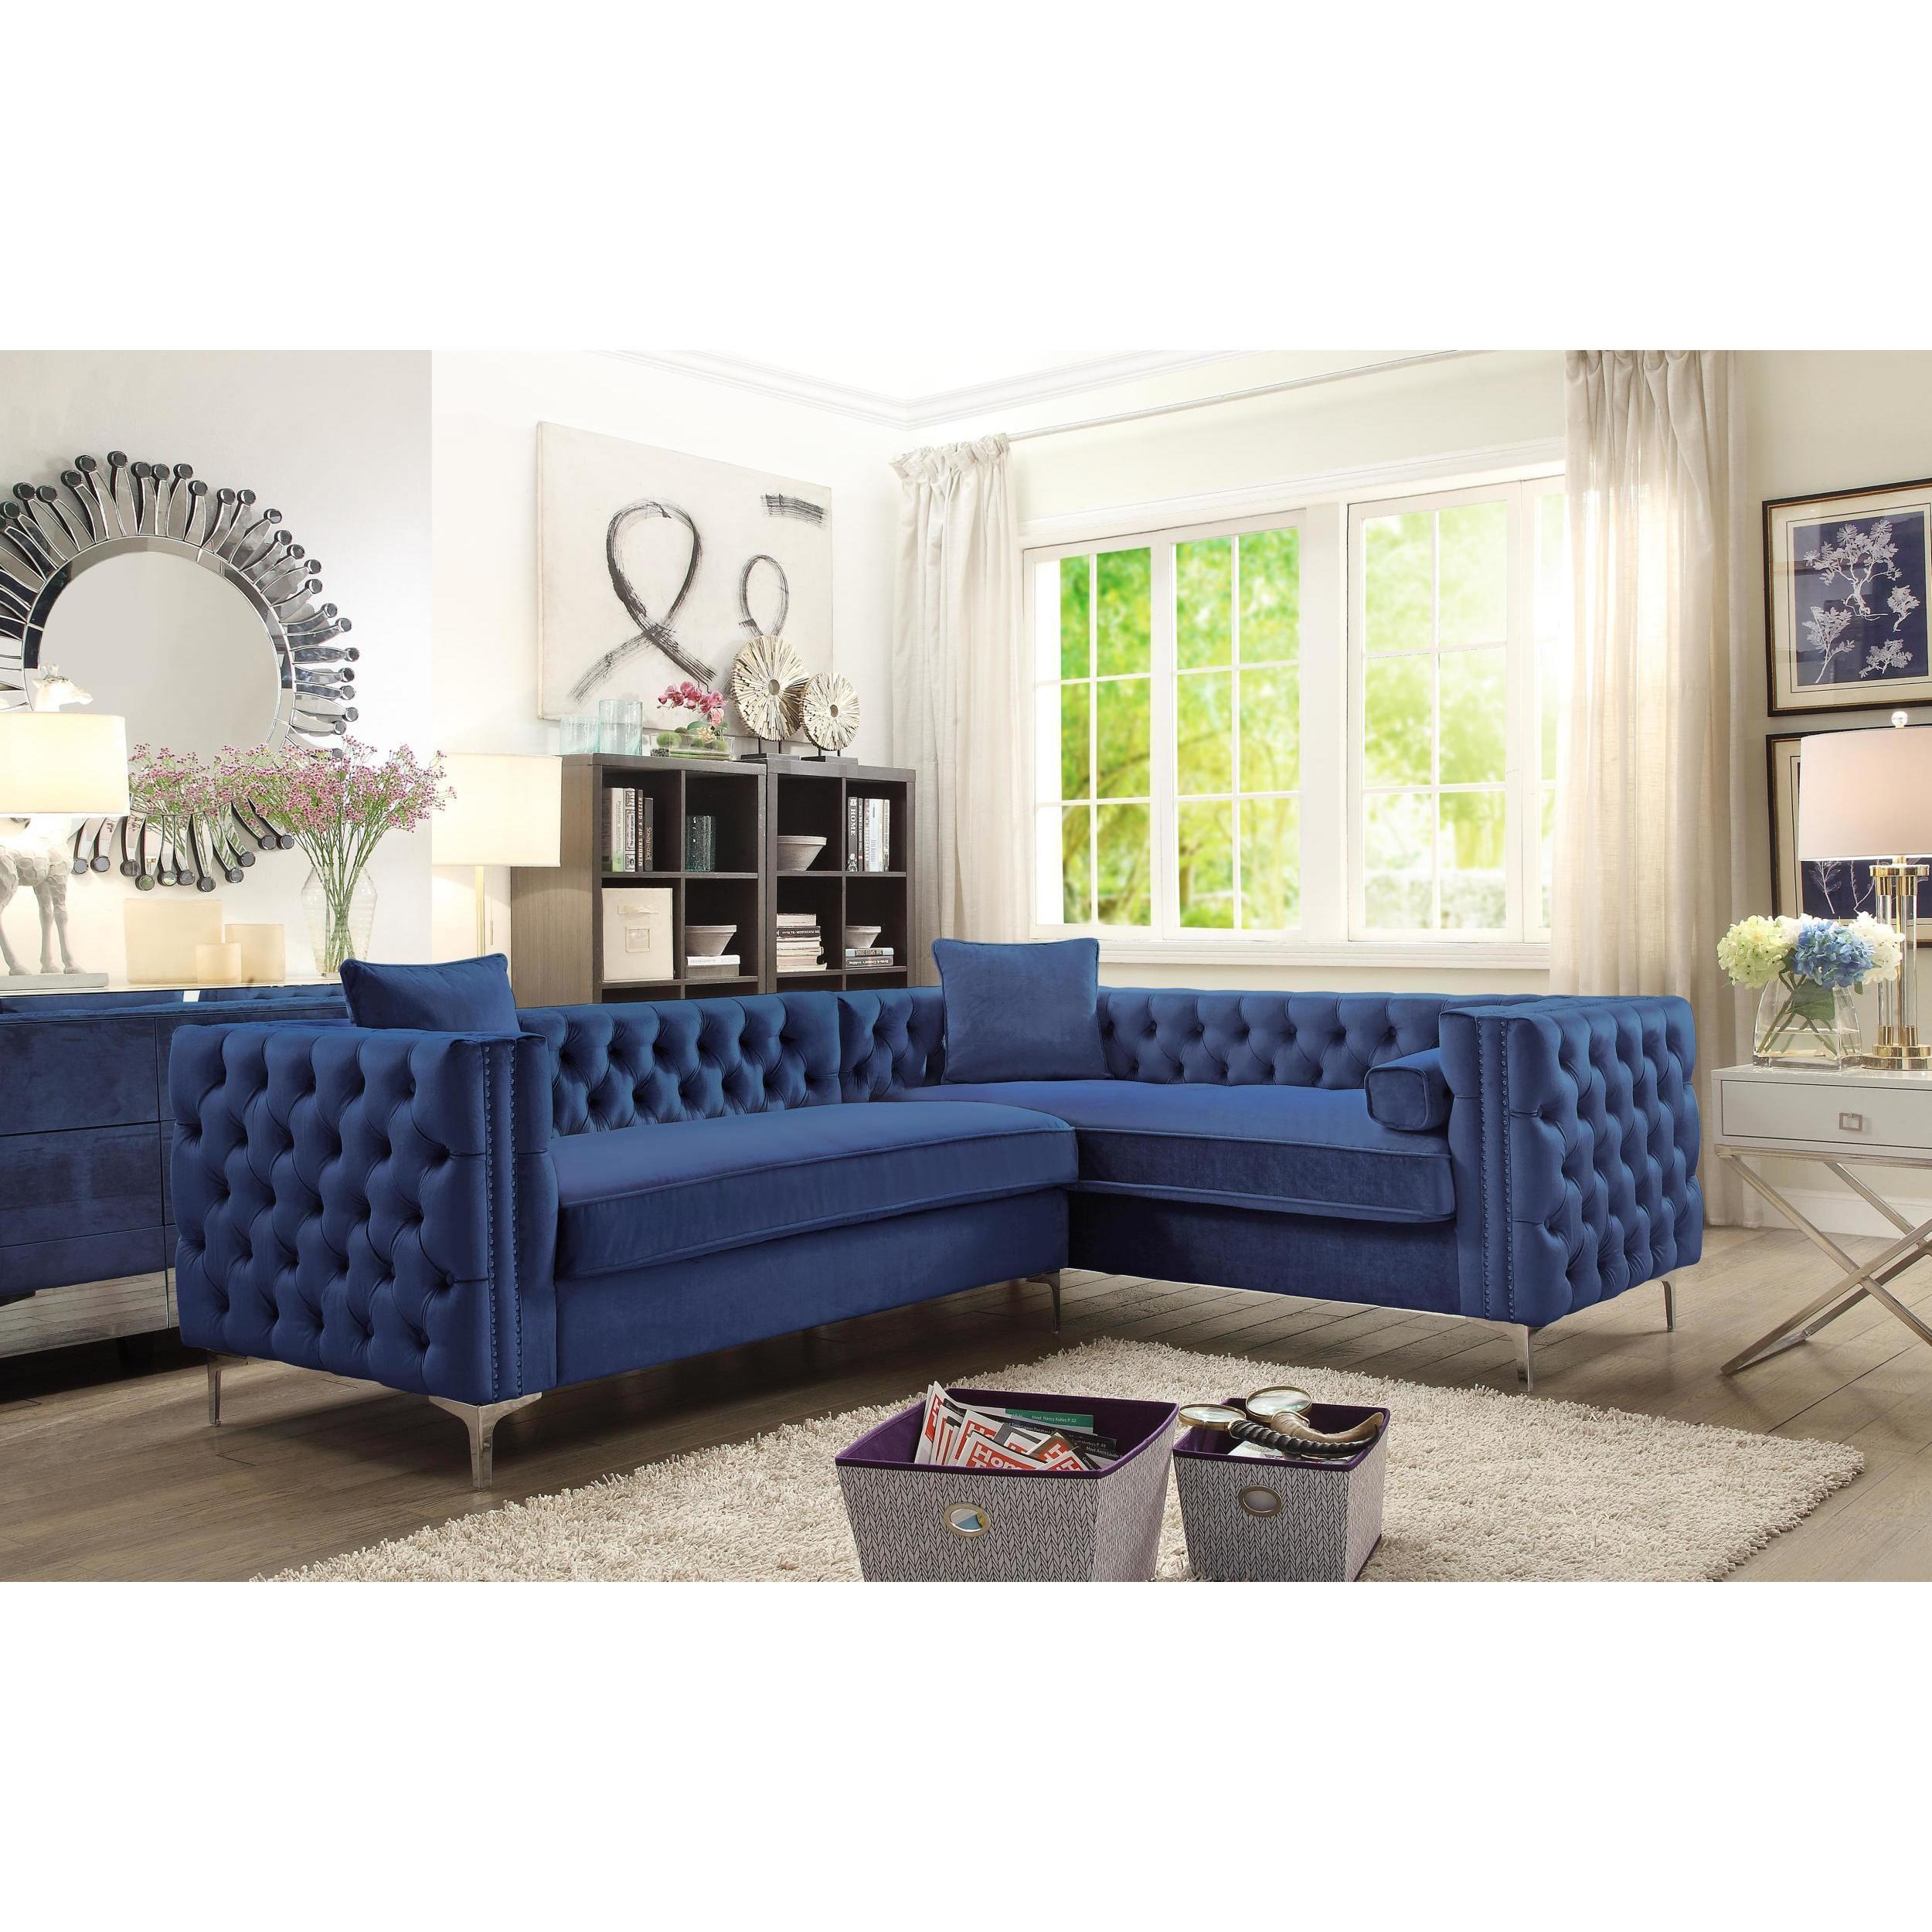 Exceptionnel Shop Chic Home Susan Blue Velvet Tufted Modern Sofa With Silver   On Sale    Free Shipping Today   Overstock.com   17334106